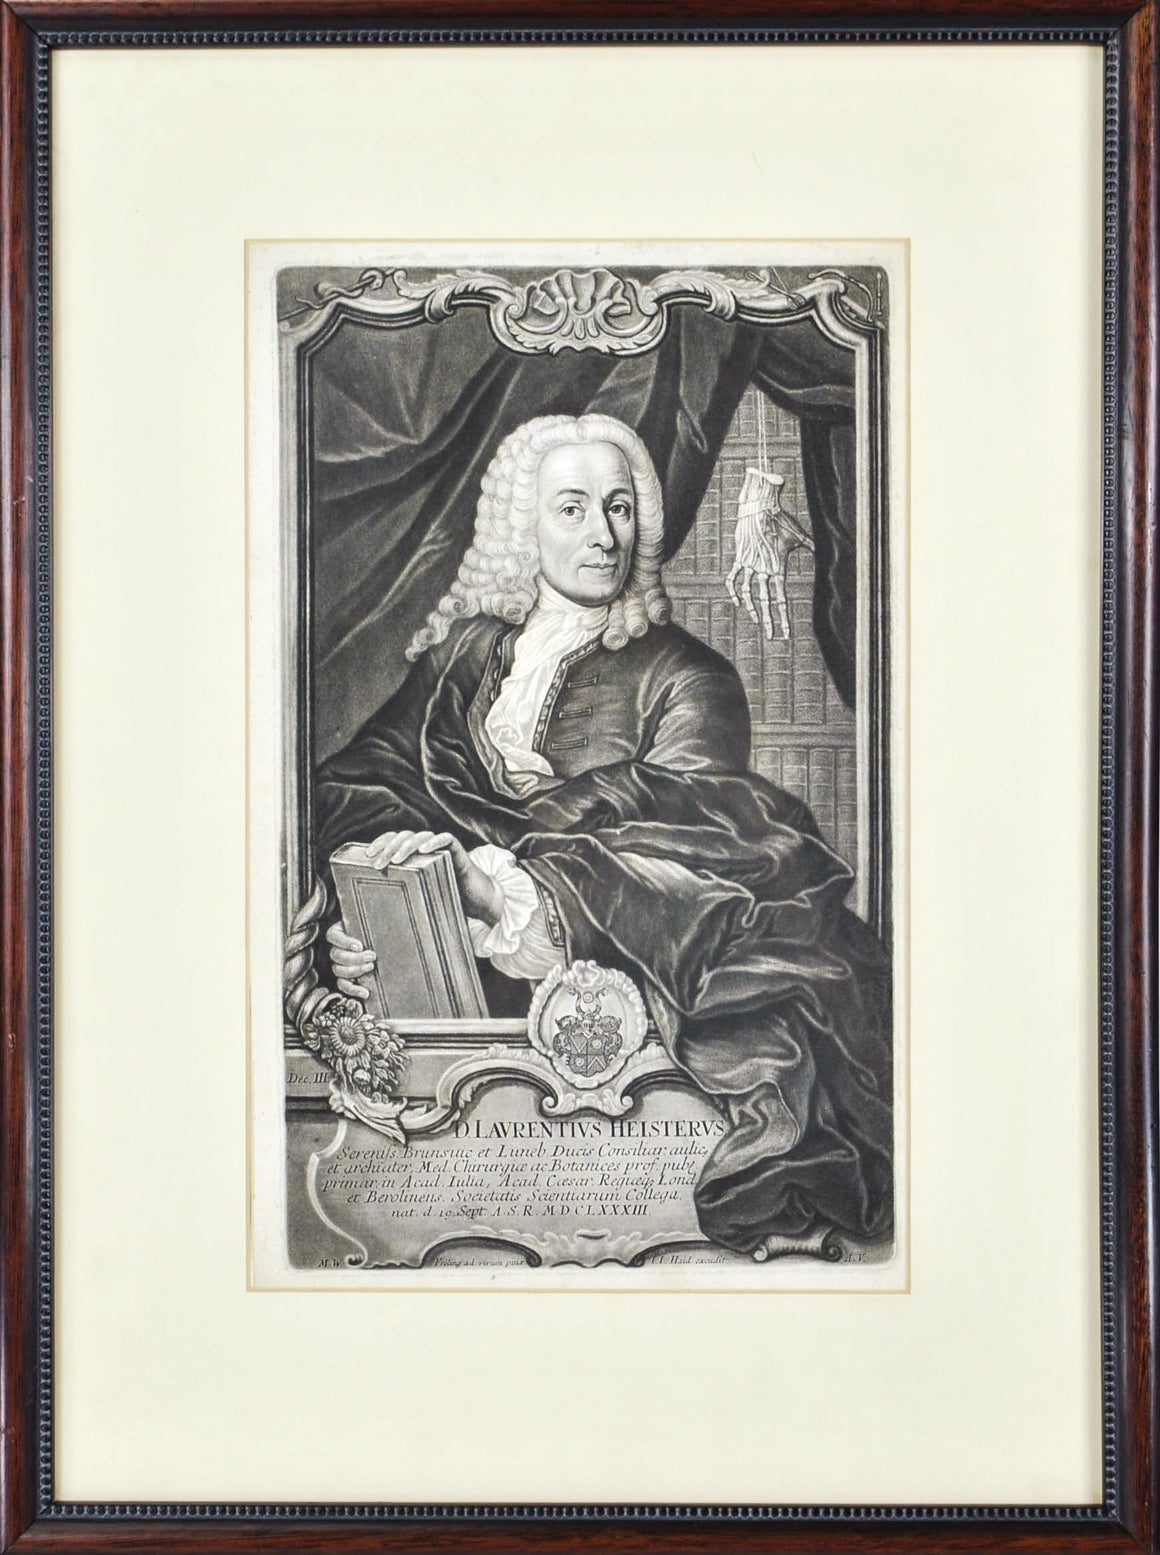 Lorenz Heister (1683-1758) Surgeon Anatomist Antique Print 1741